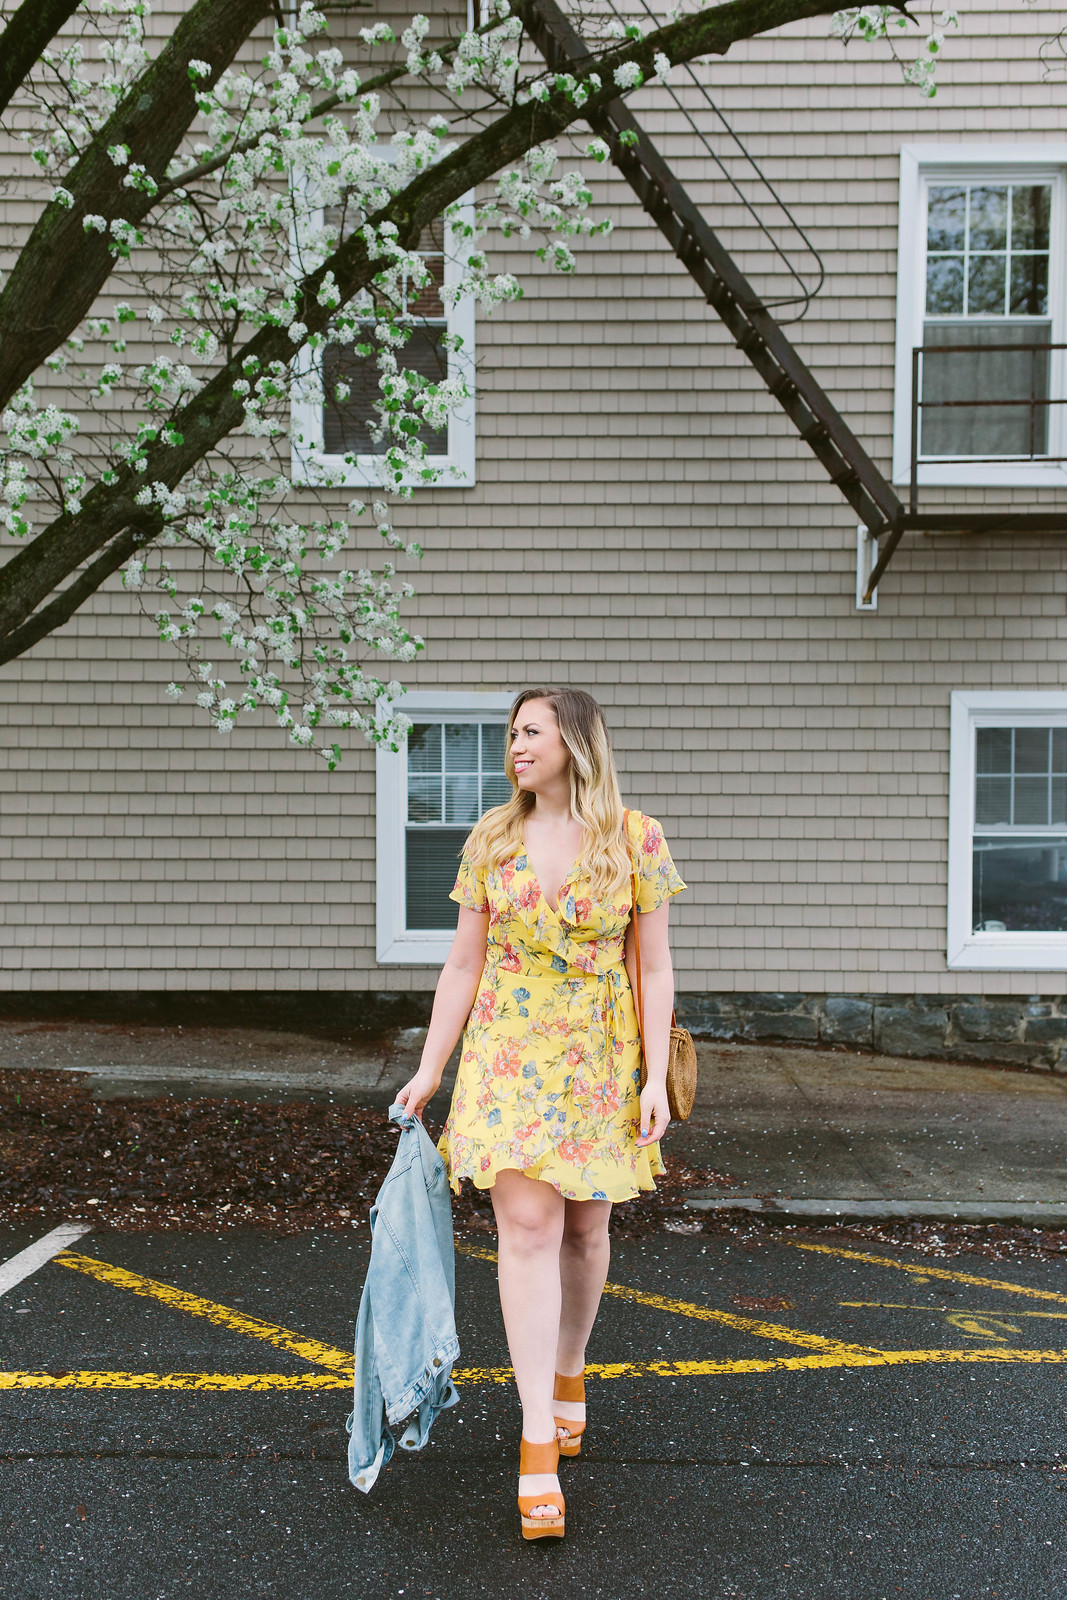 Nordstrom Lush Yellow Ruffle Wrap Dress Rattan Round Straw Bag Gap Jean Jacket Tan Wedges Sandals Spring Summer Outfit Inspiration Jackie Giardina Living After Midnite